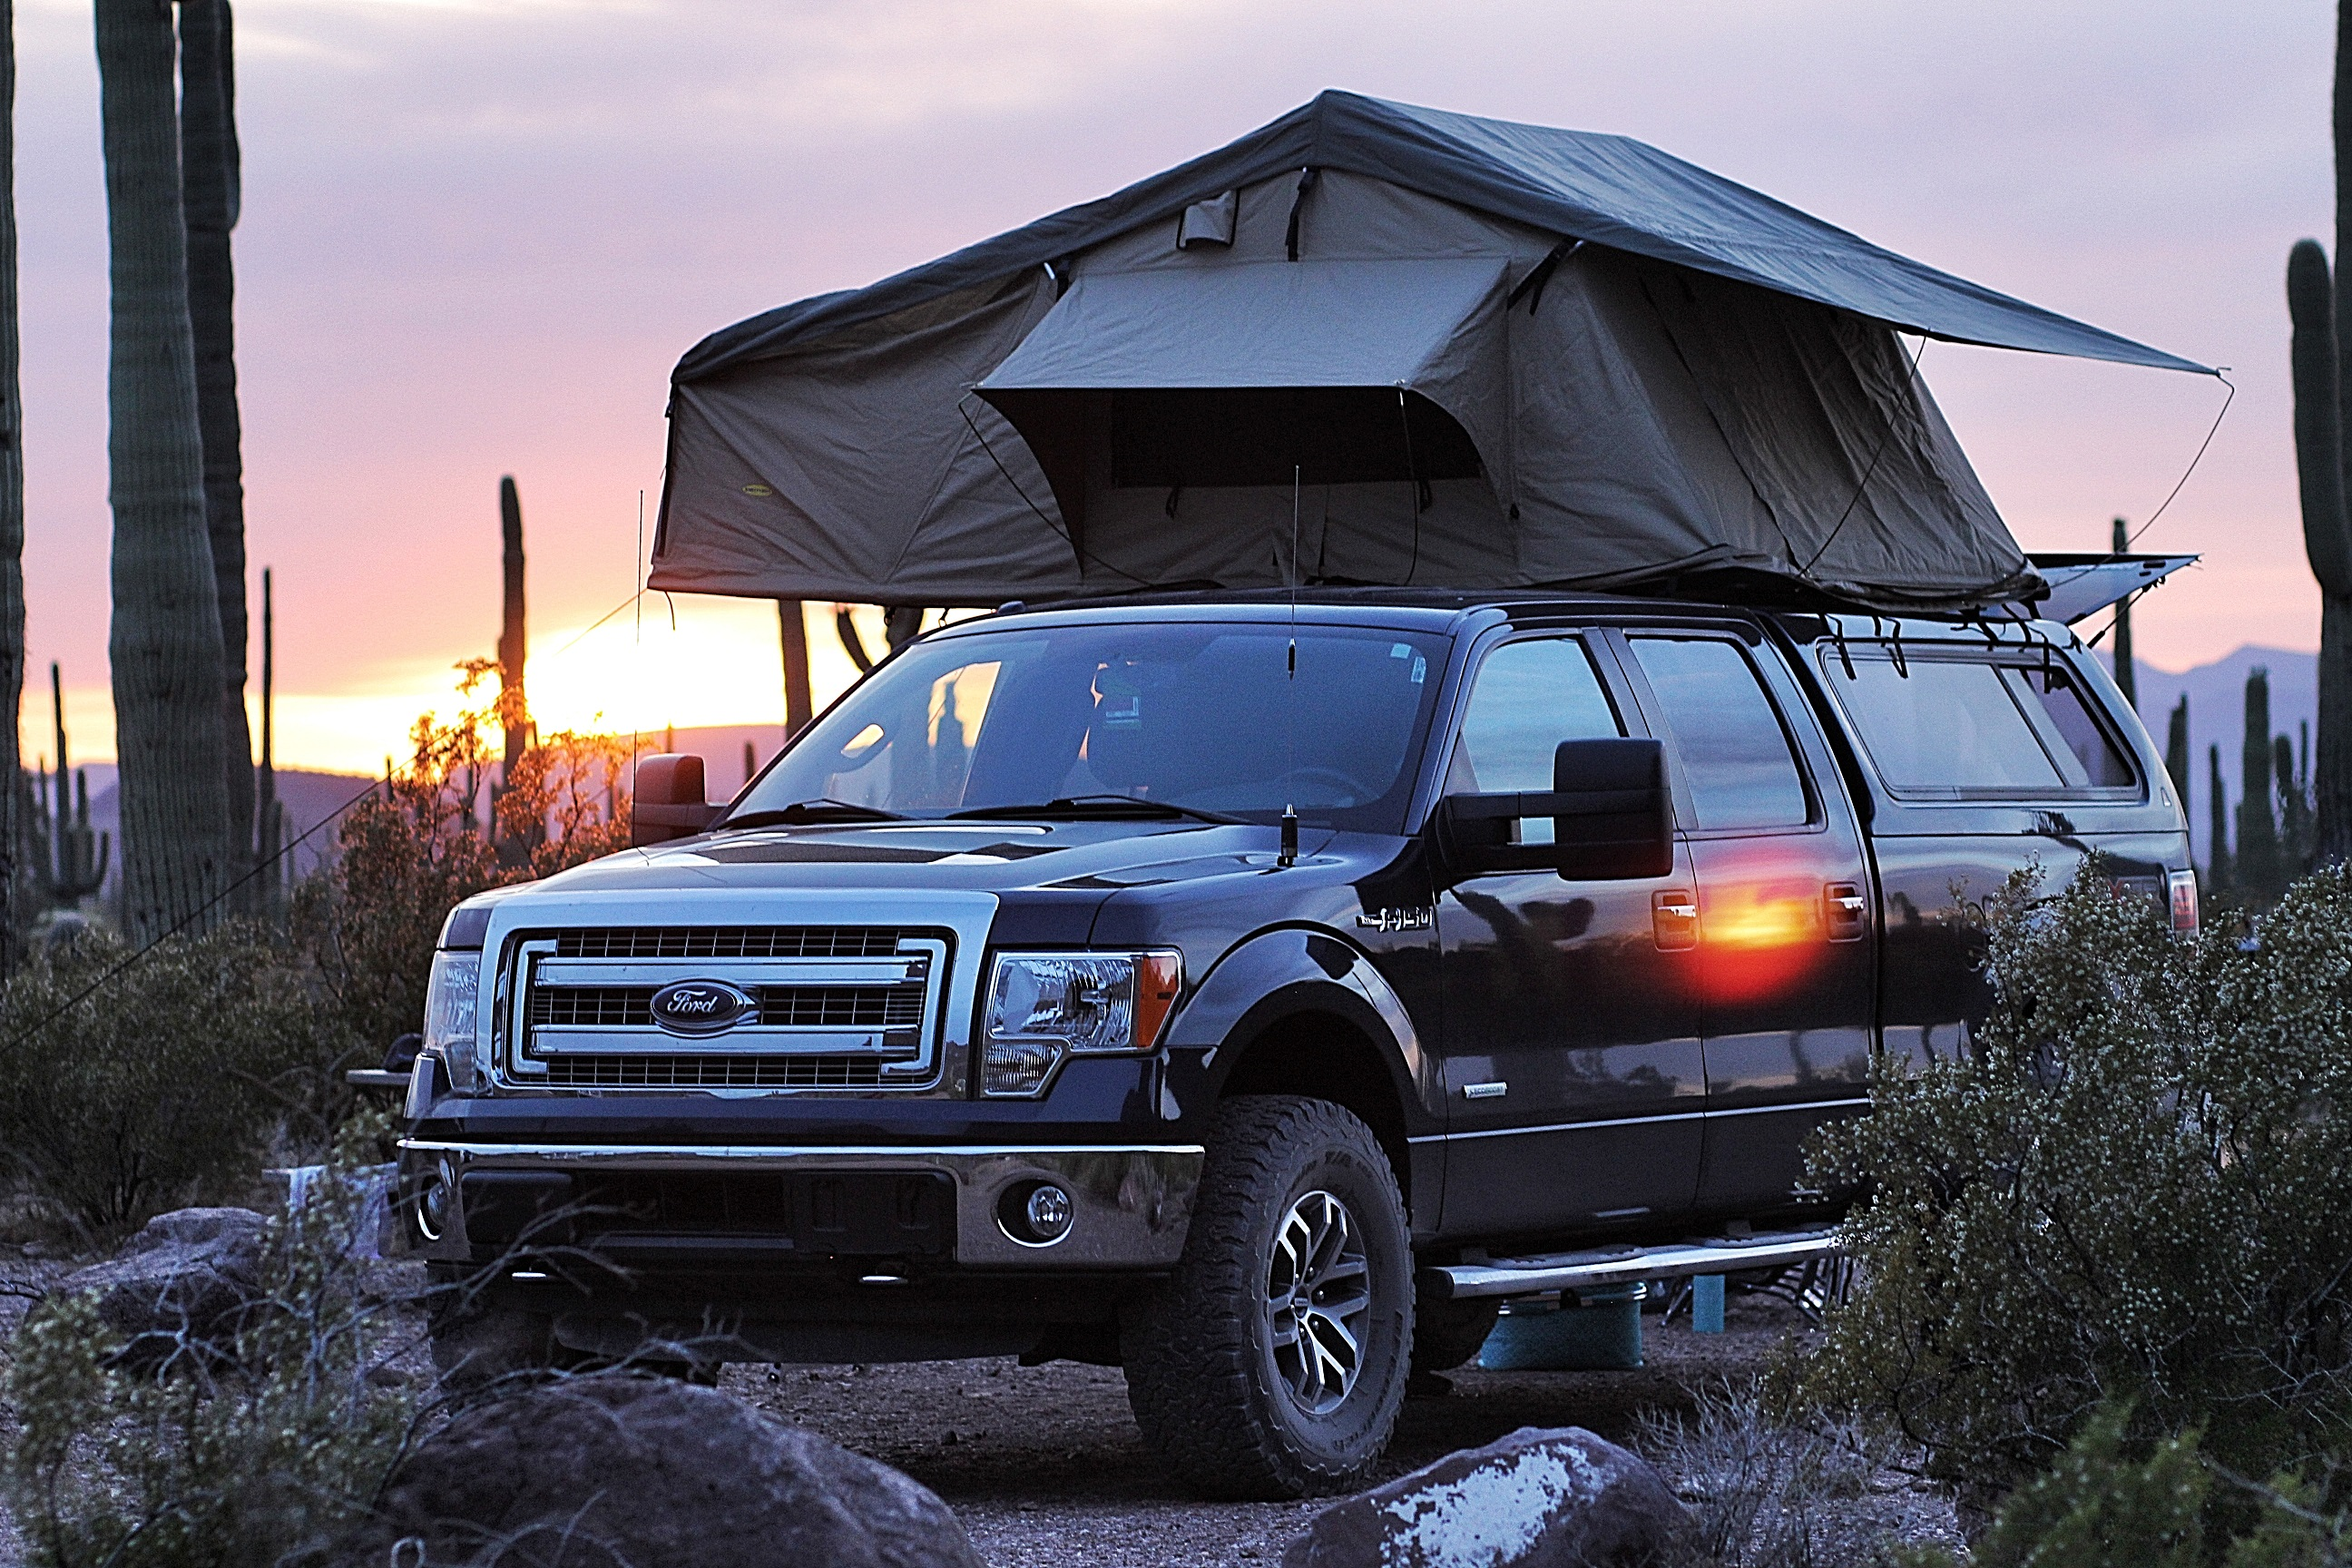 Affordable Roof Top Tent for the Family